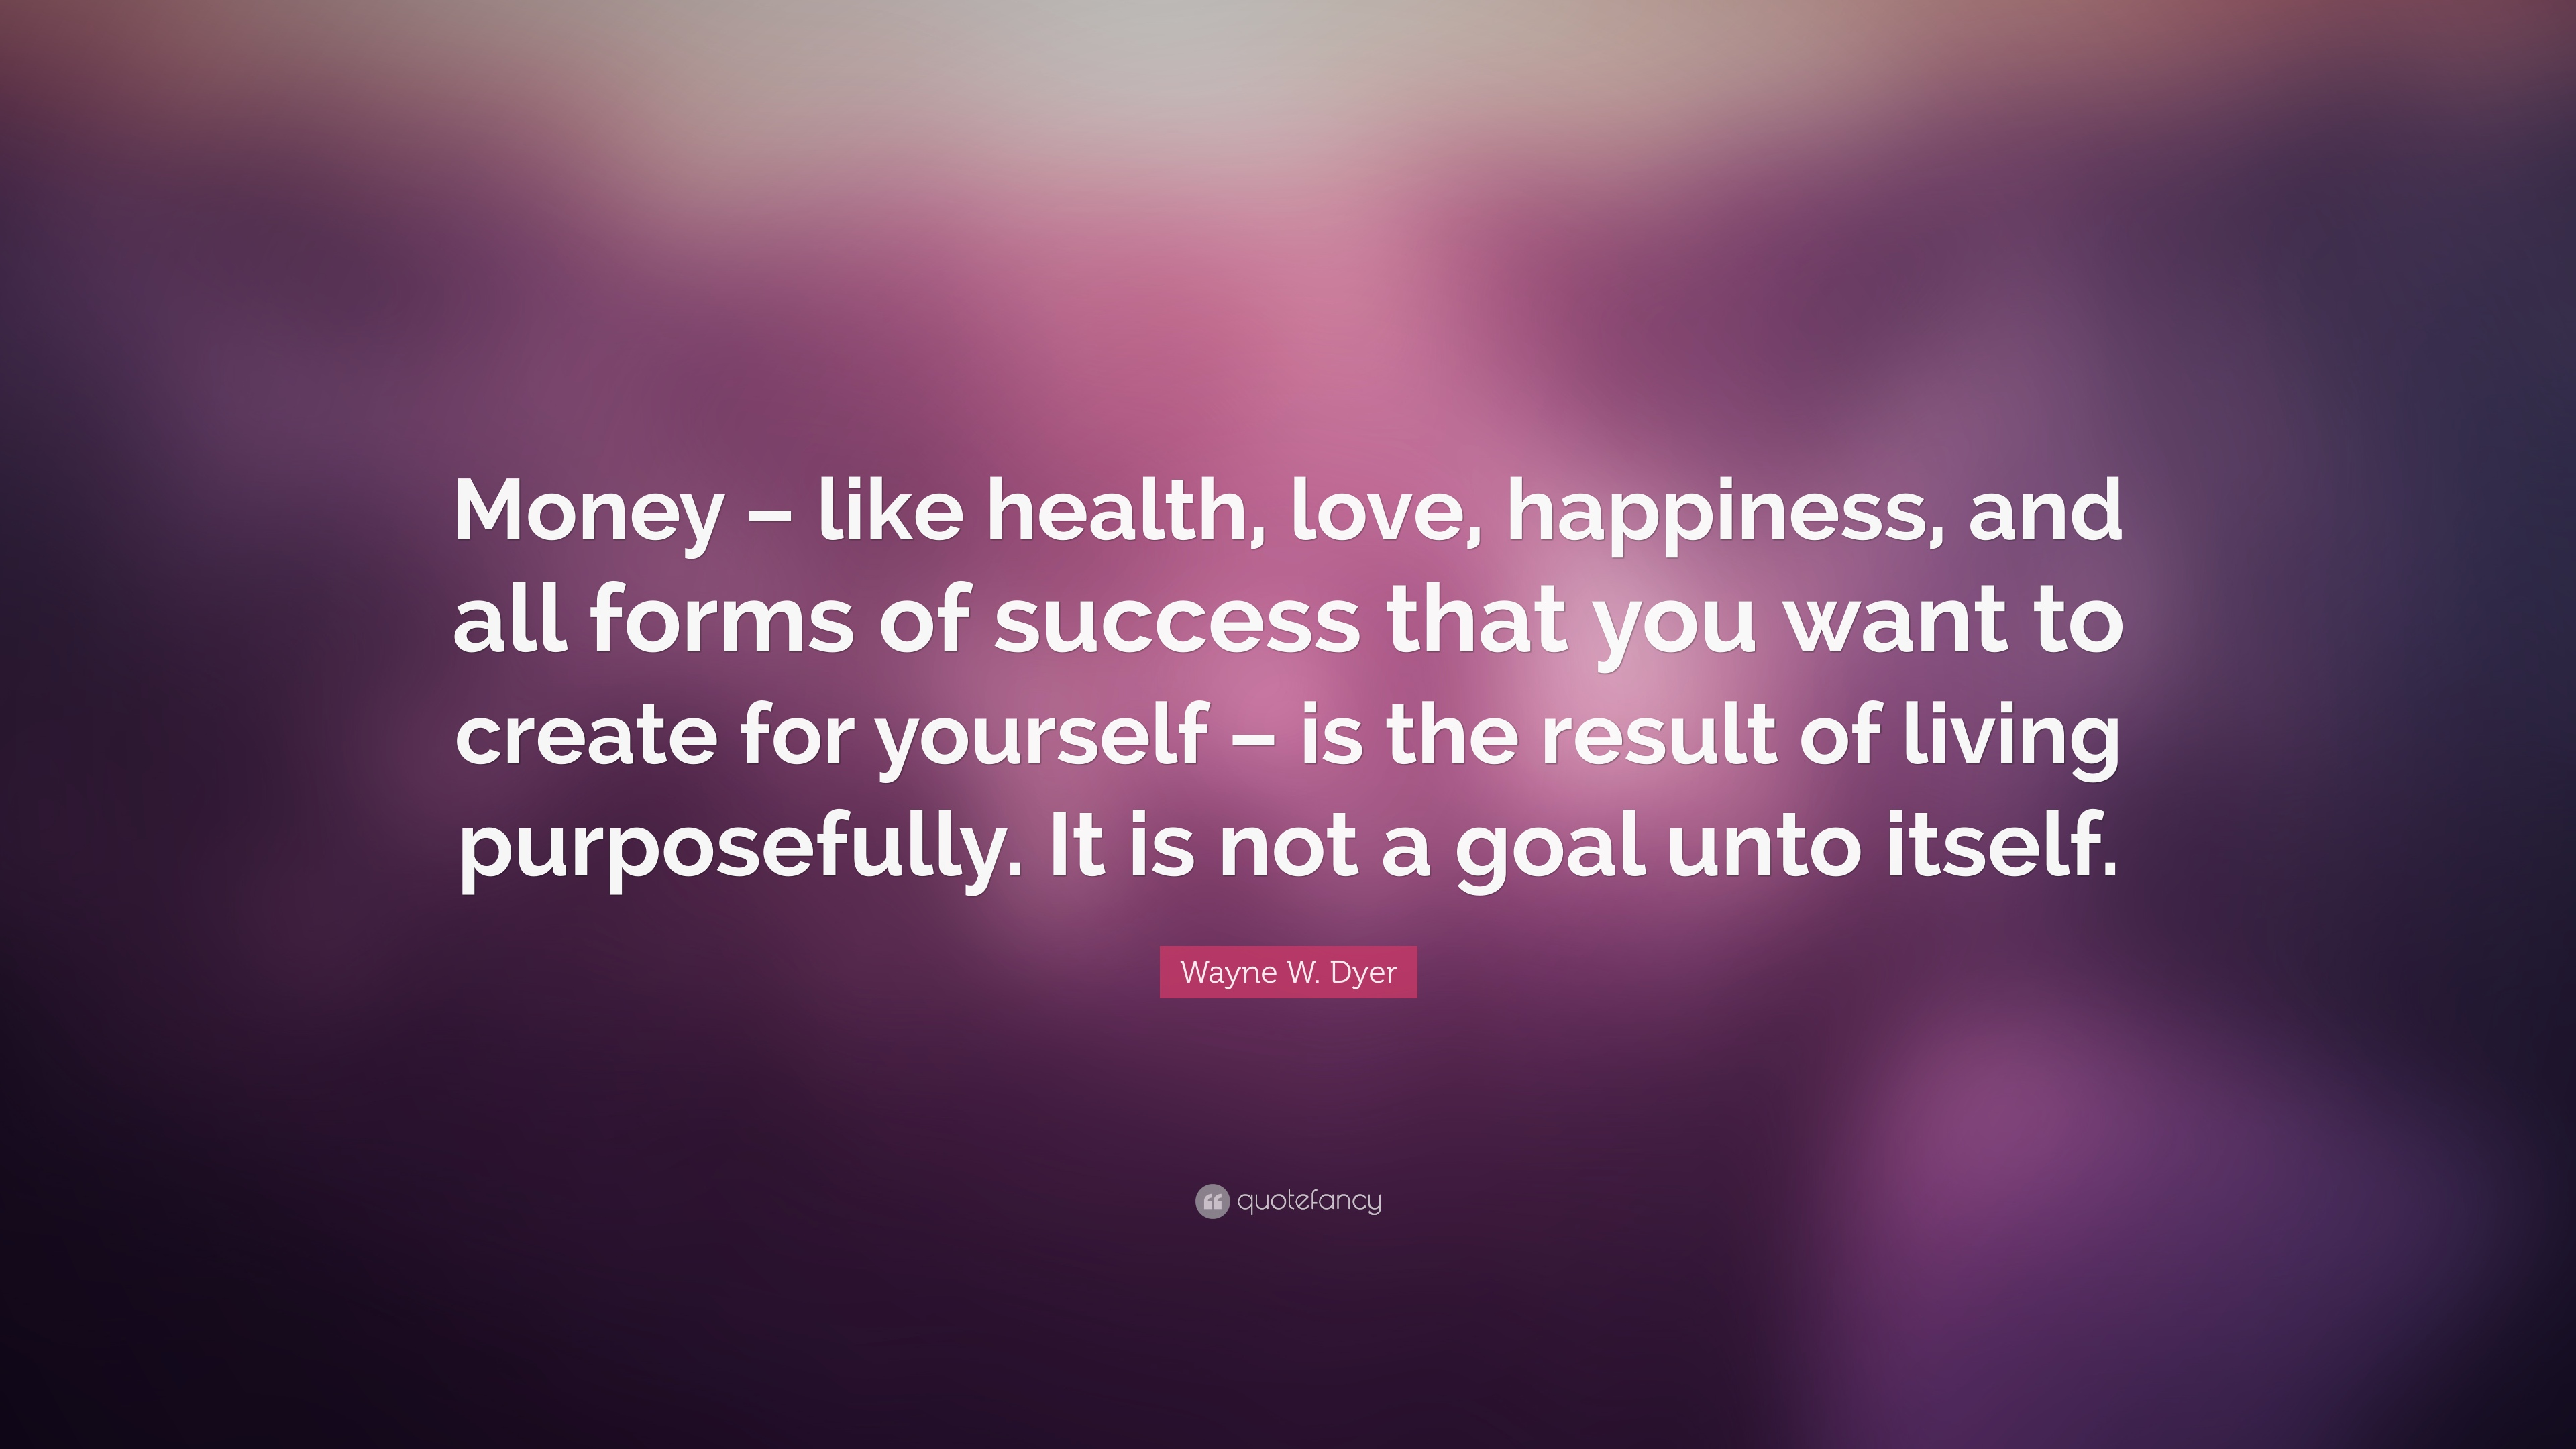 Wayne W Dyer Quote Money Like Health Love Happiness And All